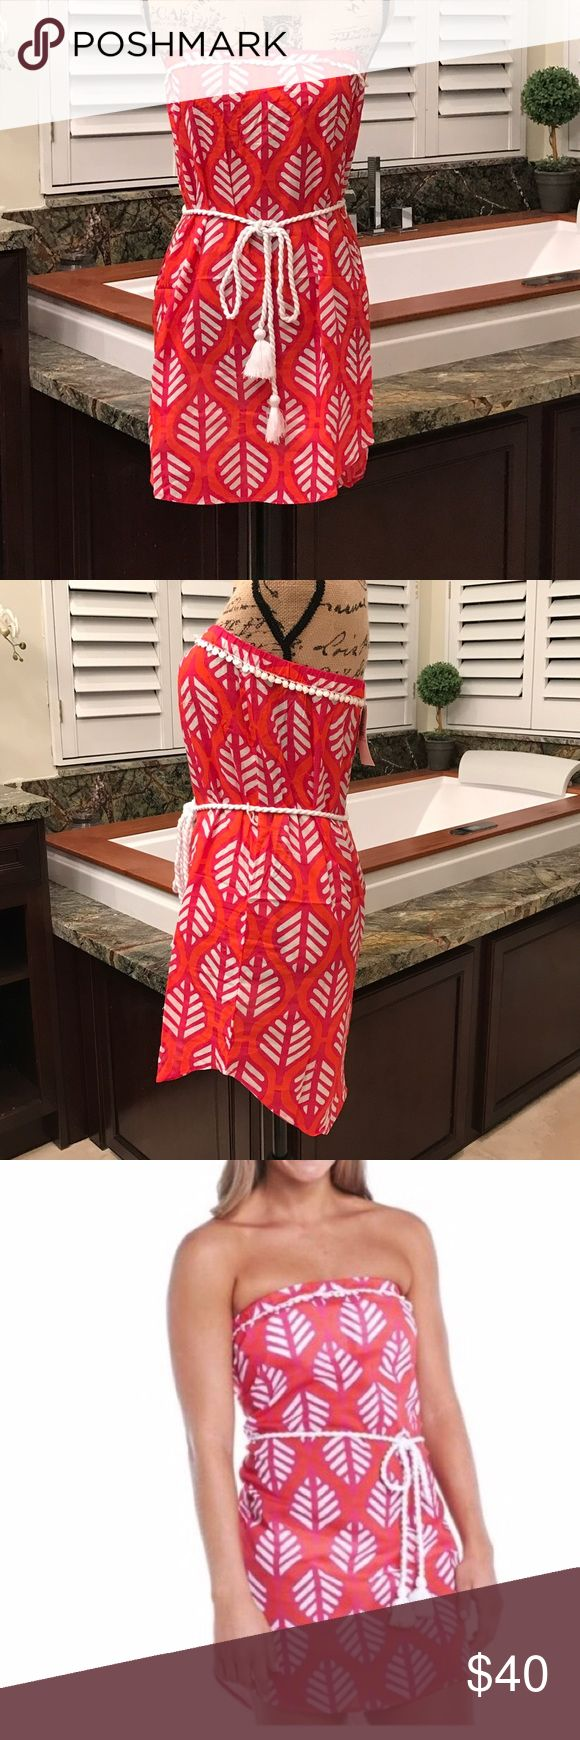 🇺🇸Red and white tube top cover up 🇺🇸 Perfect for July this cute cover up is red with a white leafy pattern and rope tie at the waist. Mud Pie Swim Coverups